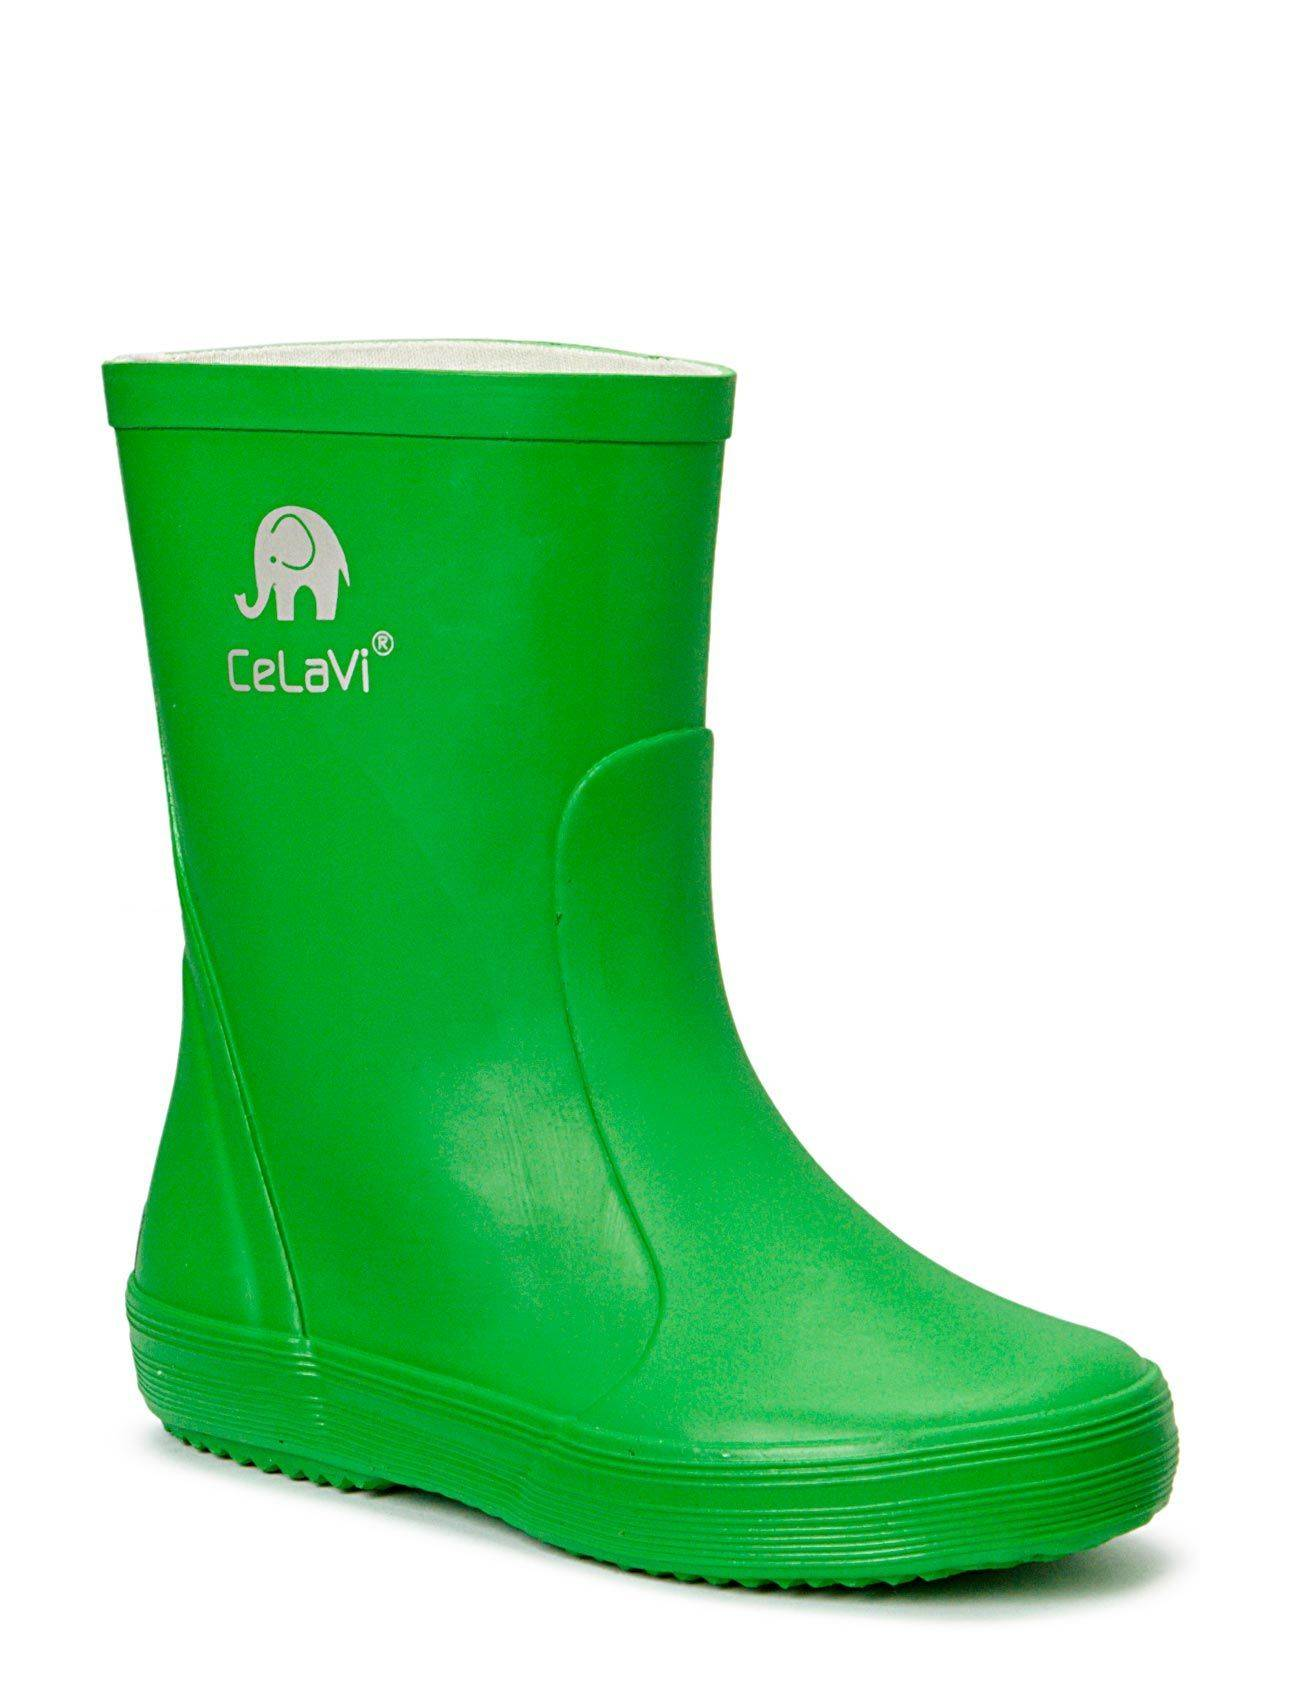 CeLaVi Basic Wellies, Solid